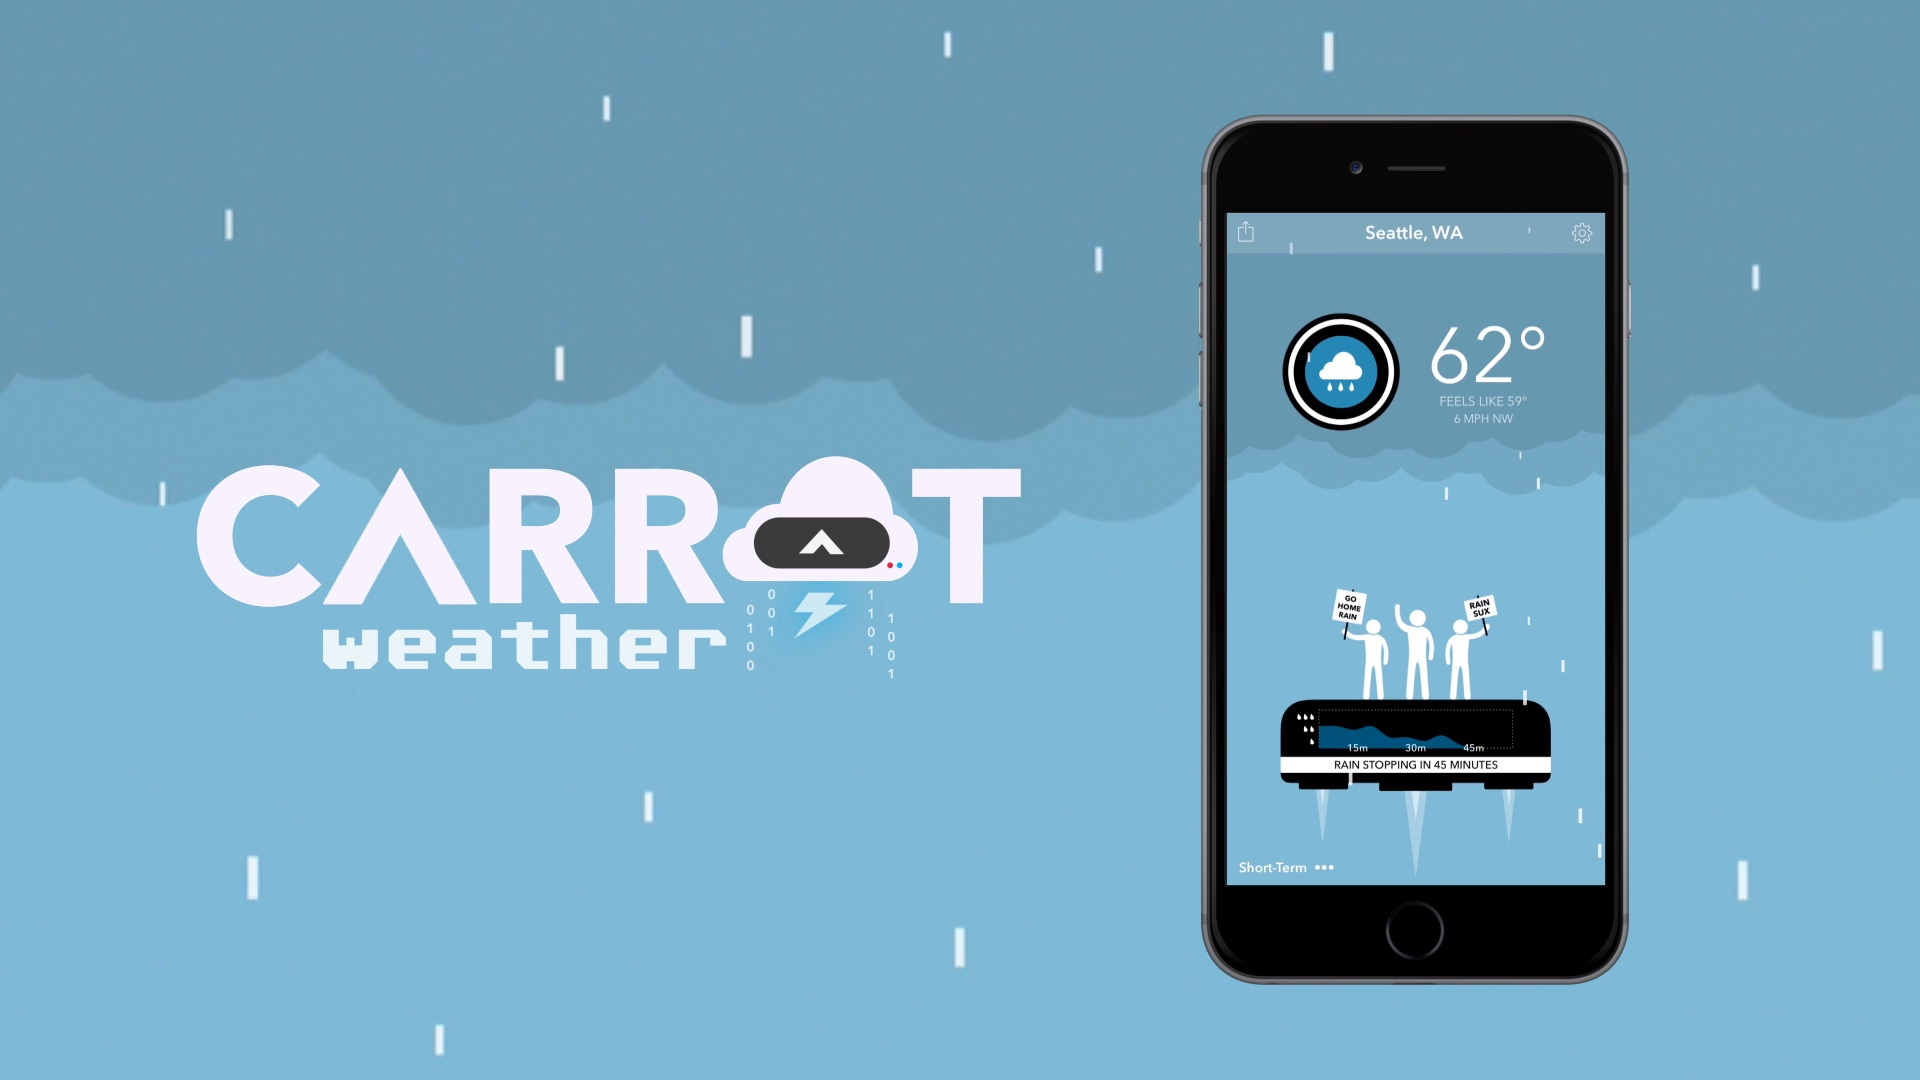 Sadistic robots in Carrot Weather taunt we when it's going to rain